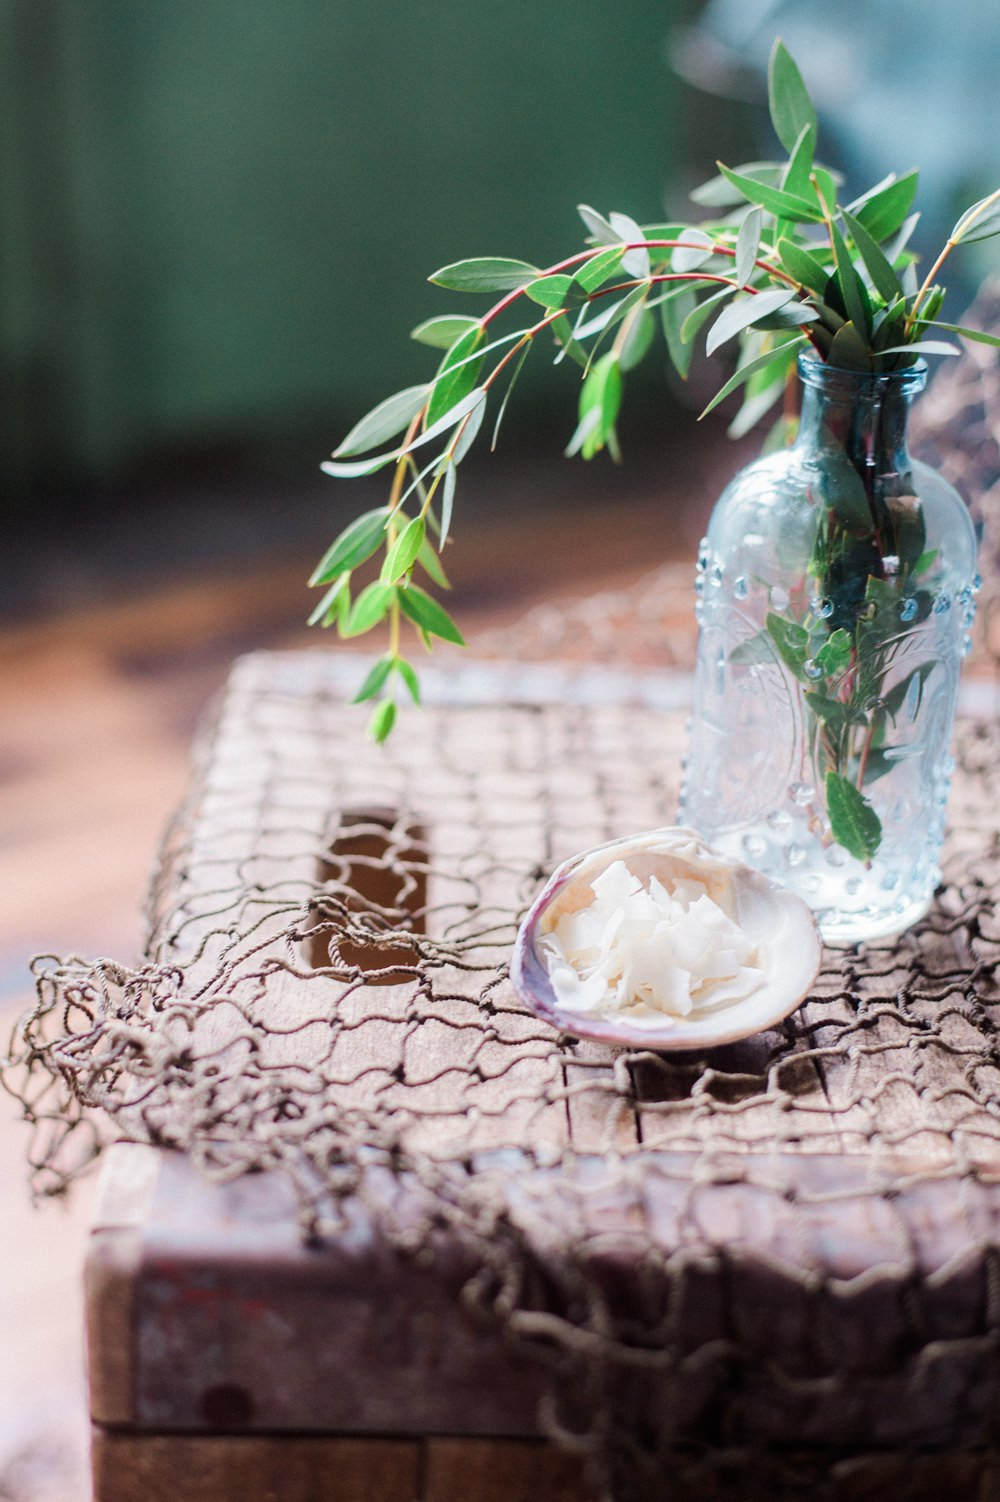 Nature Inspired Styled Shoot Blue Glass Bottle Seashell Salt Greenery Decor | Ocean Wedding Ideas Industrial Rachel Watkinson PhotographyOcean Wedding Ideas Industrial Rachel Watkinson Photography